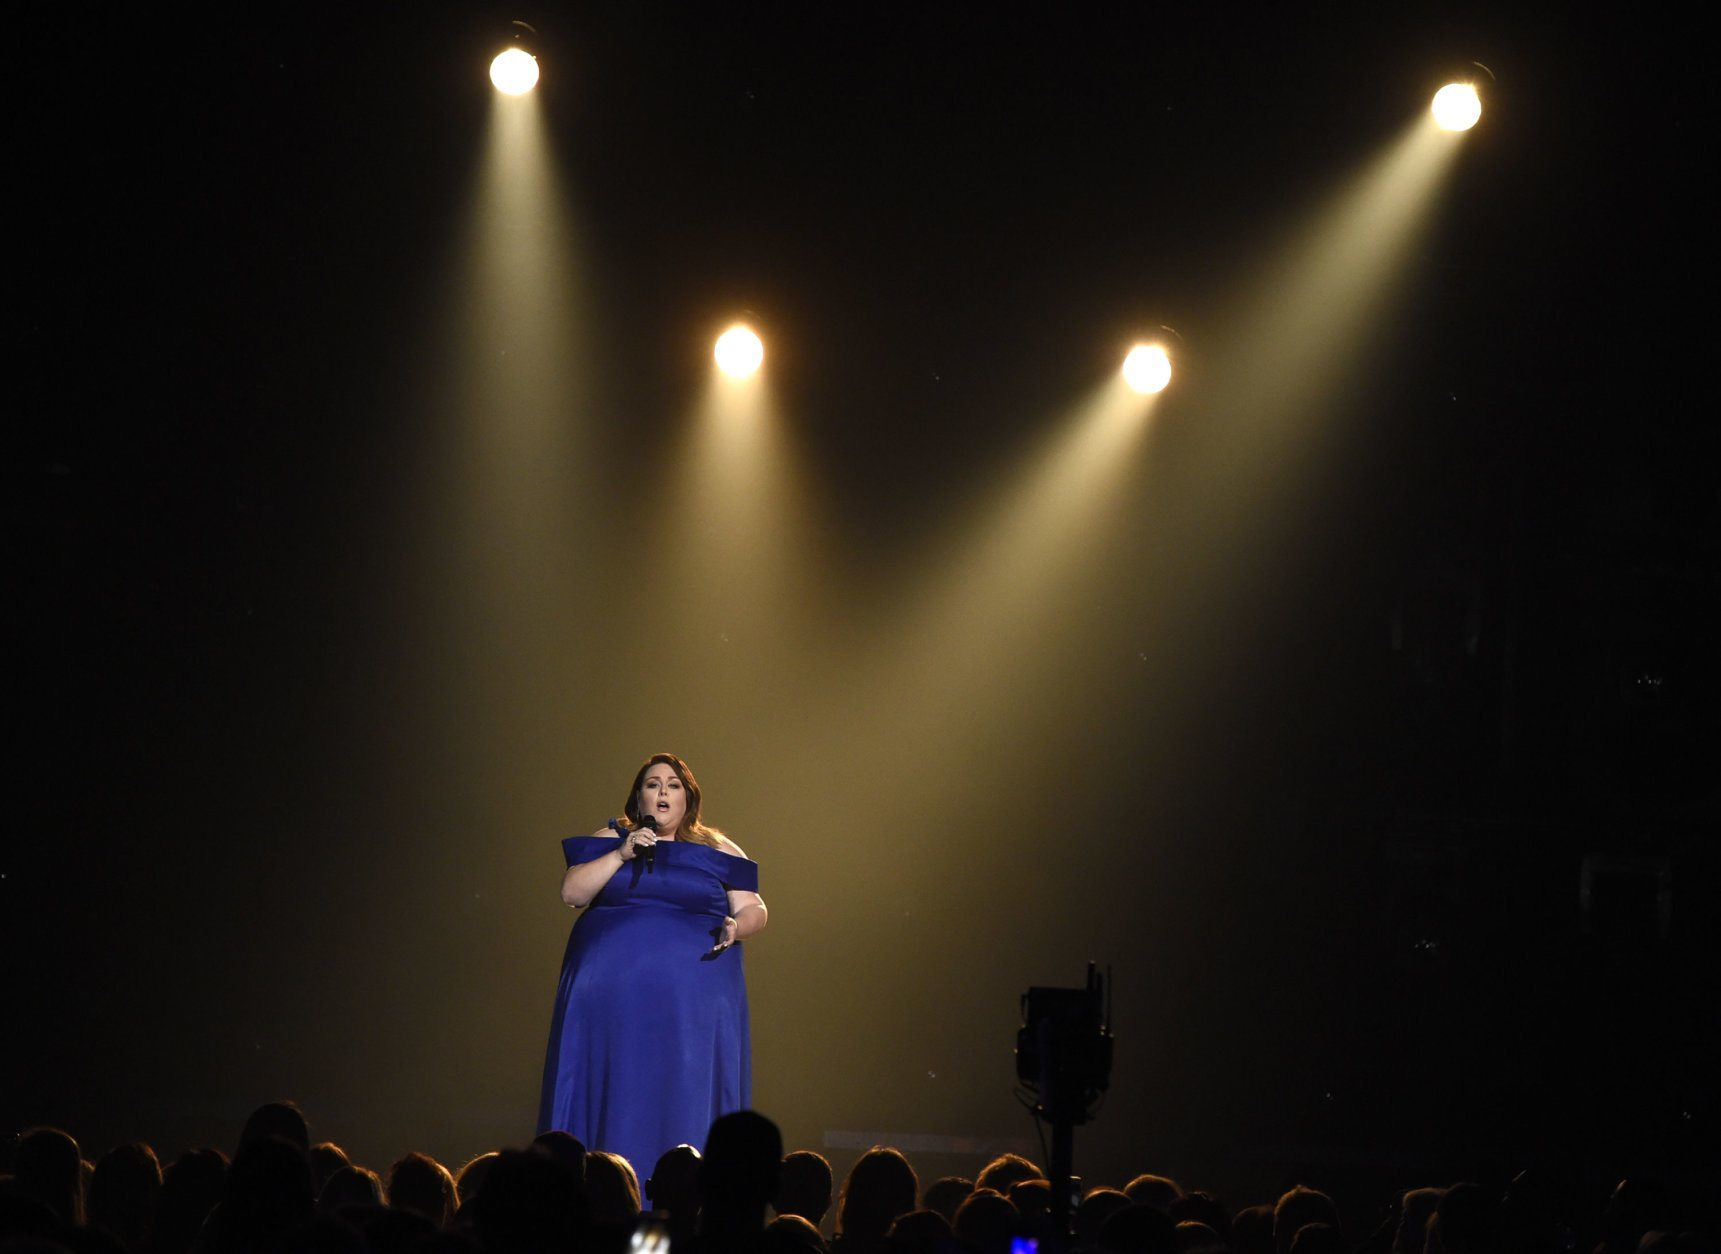 """Chrissy Metz performs """"I'm Standing with You"""" at the 54th annual Academy of Country Music Awards at the MGM Grand Garden Arena on Sunday, April 7, 2019, in Las Vegas. (Photo by Chris Pizzello/Invision/AP)"""